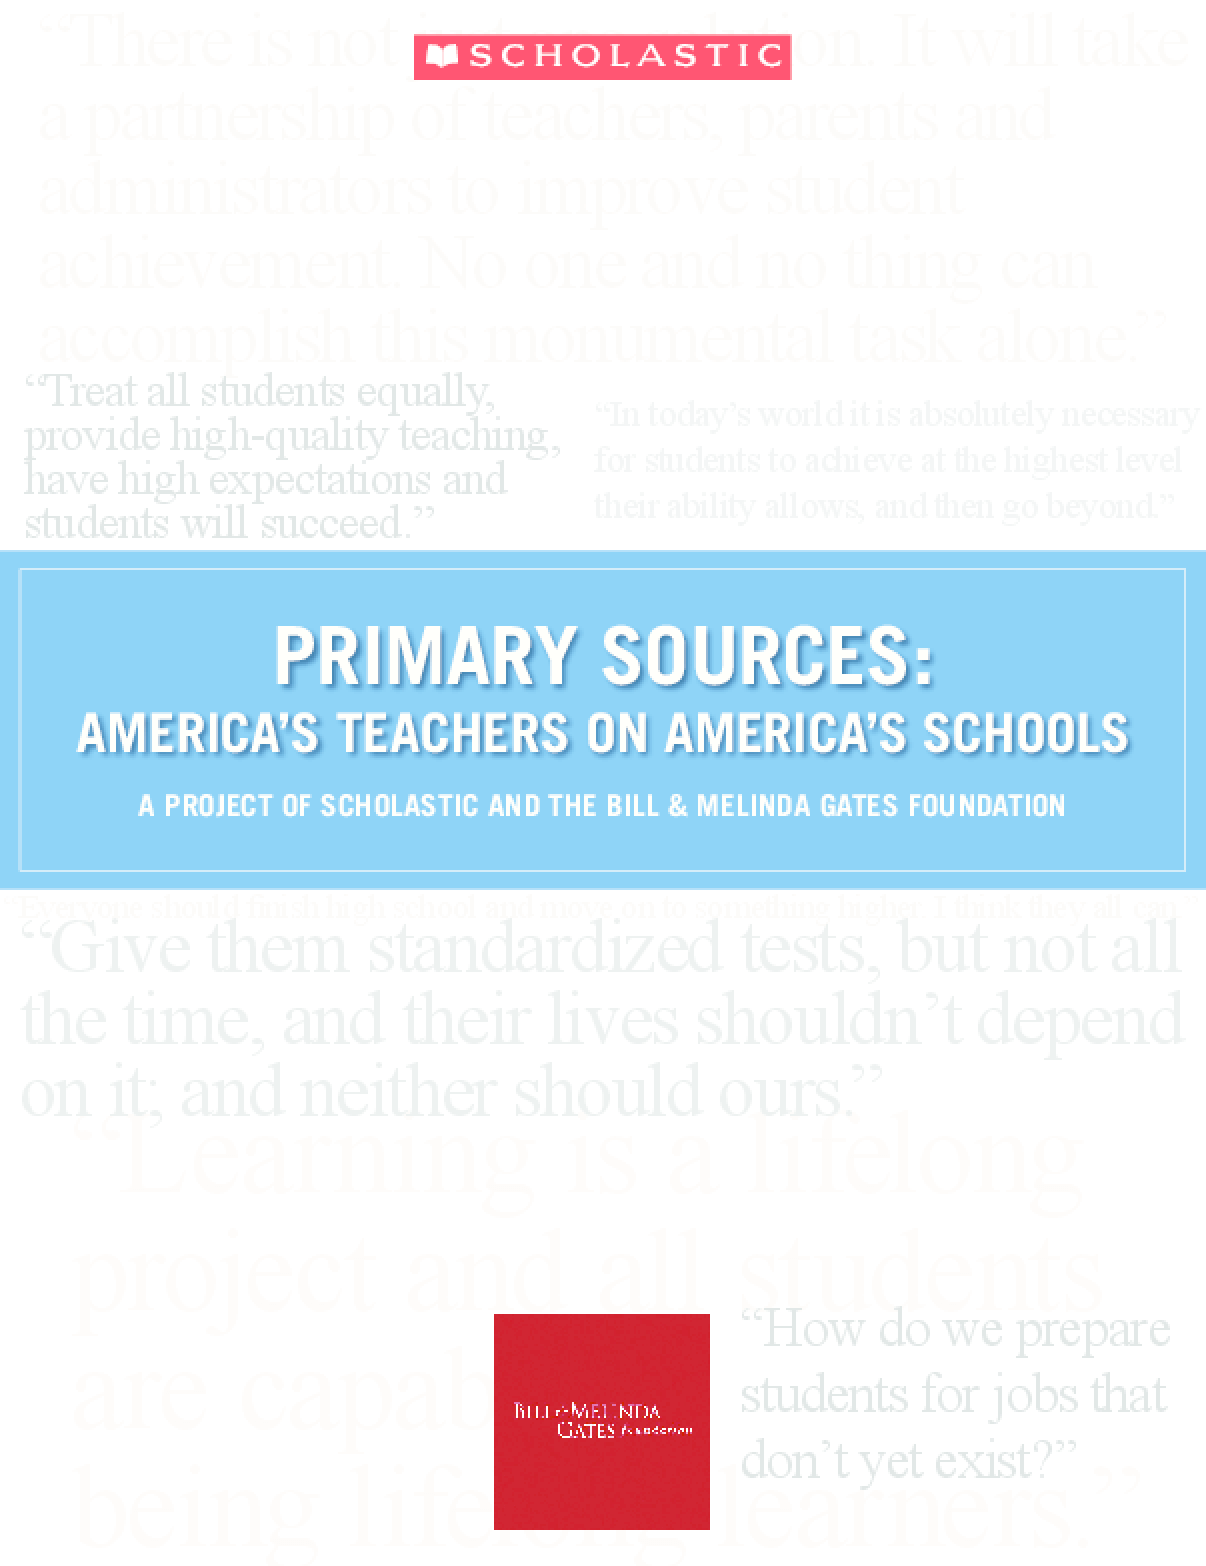 Primary Sources: America's Teachers on America's Schools